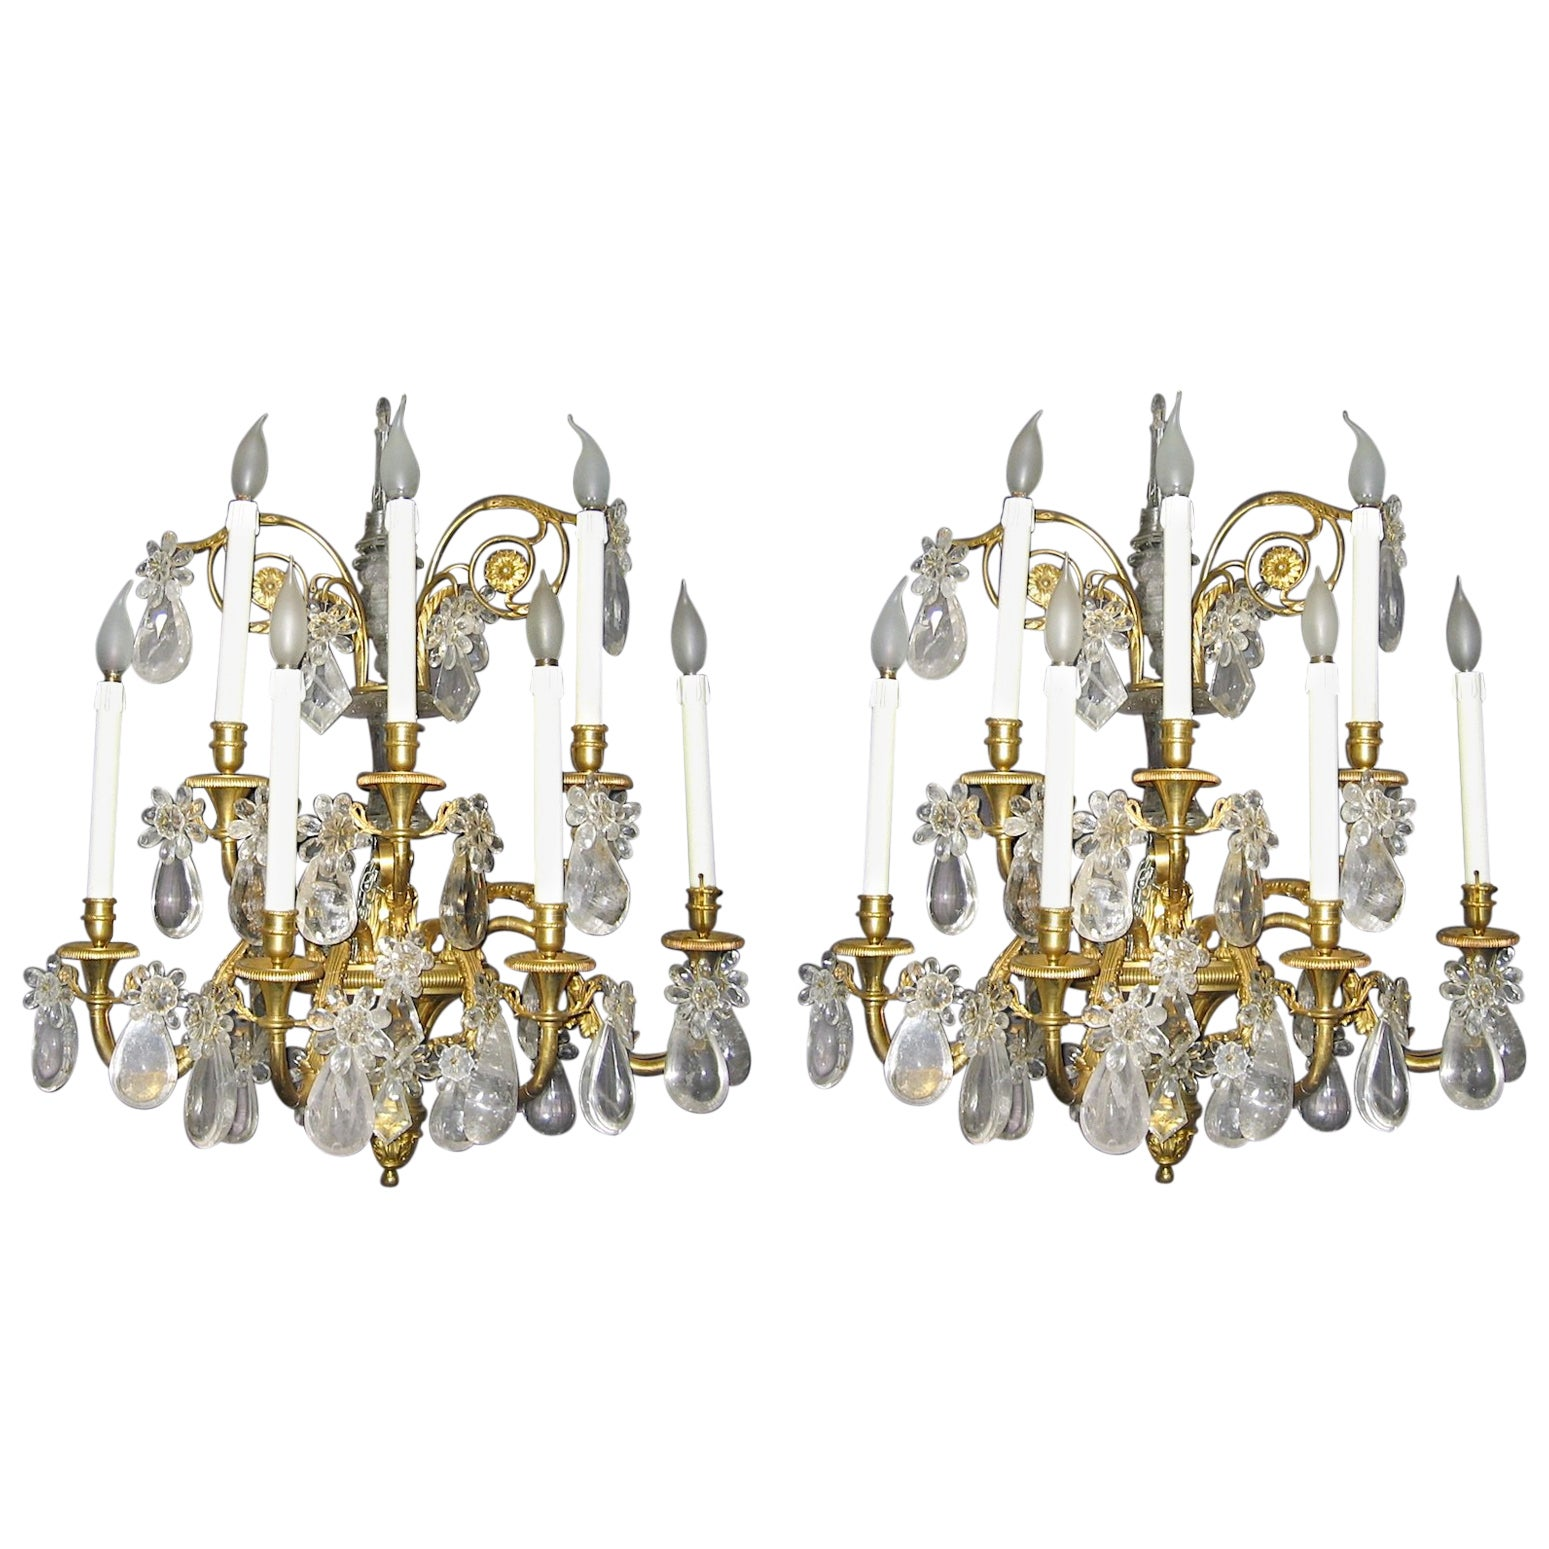 Pair of French Gilt Bronze and Rock Crystal Wall Lights or Sconces Neoclassical